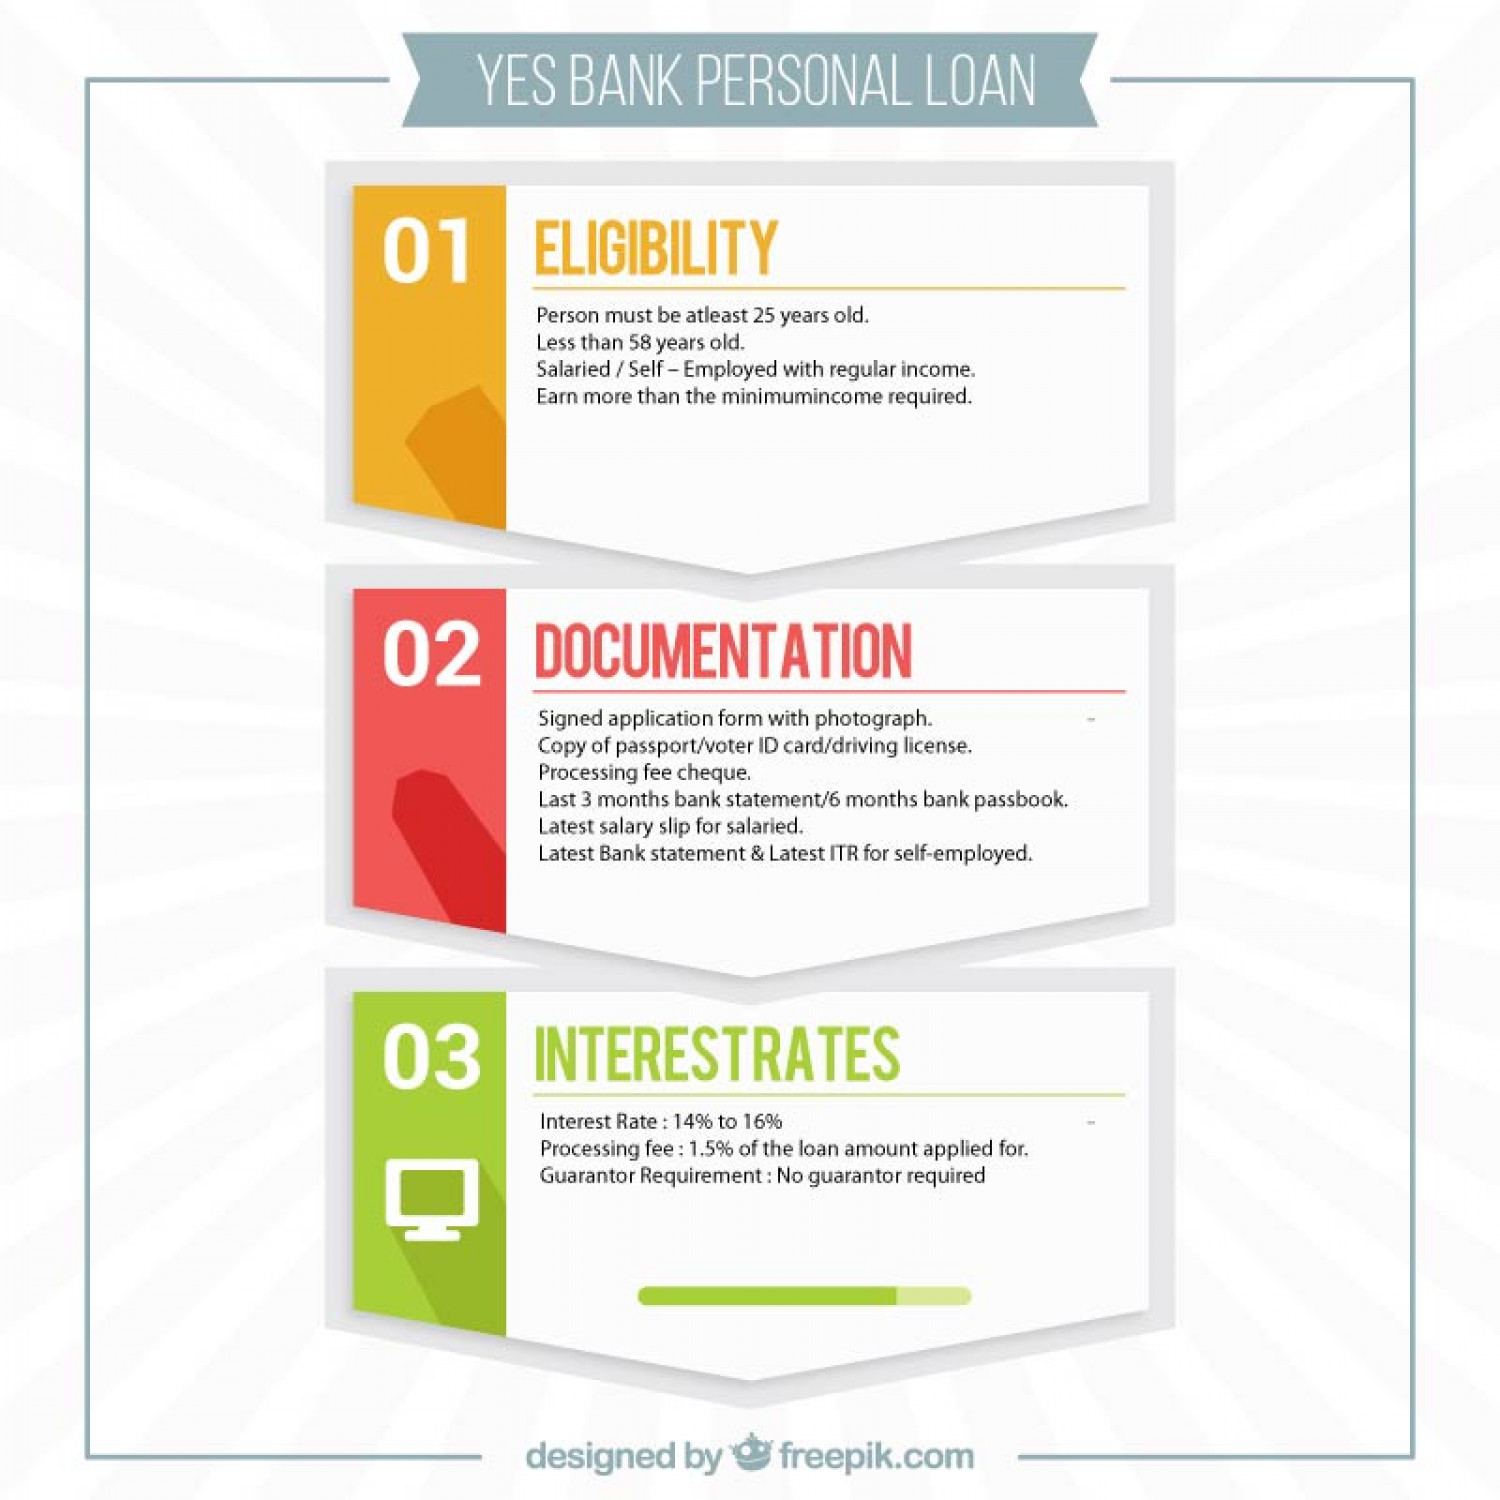 Yes Bank Personal Loan Infographic